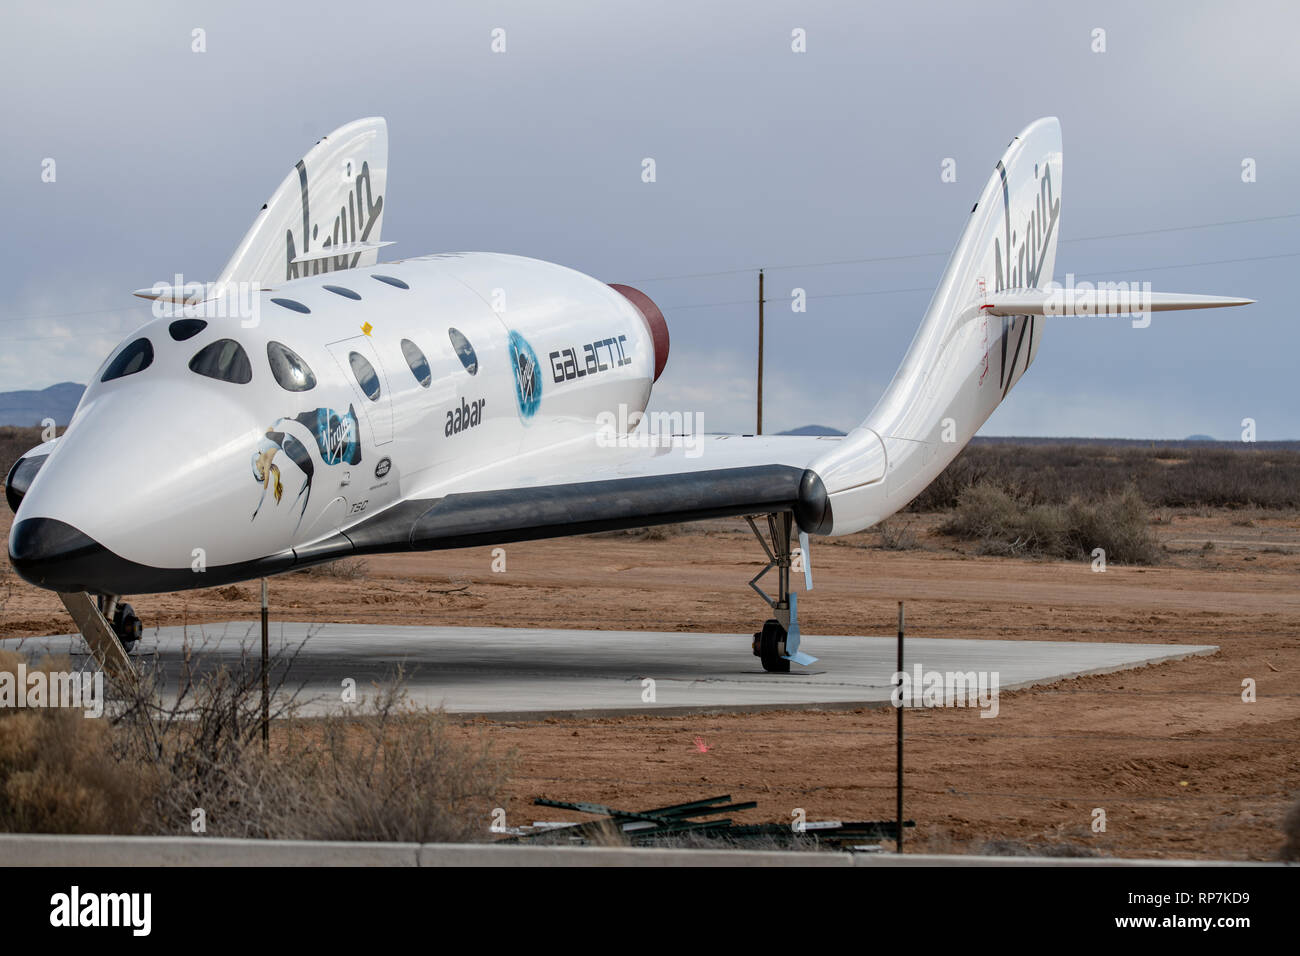 Full-size replica of Virgin Galactic's space plane at Spaceport America in New Mexico - Stock Image